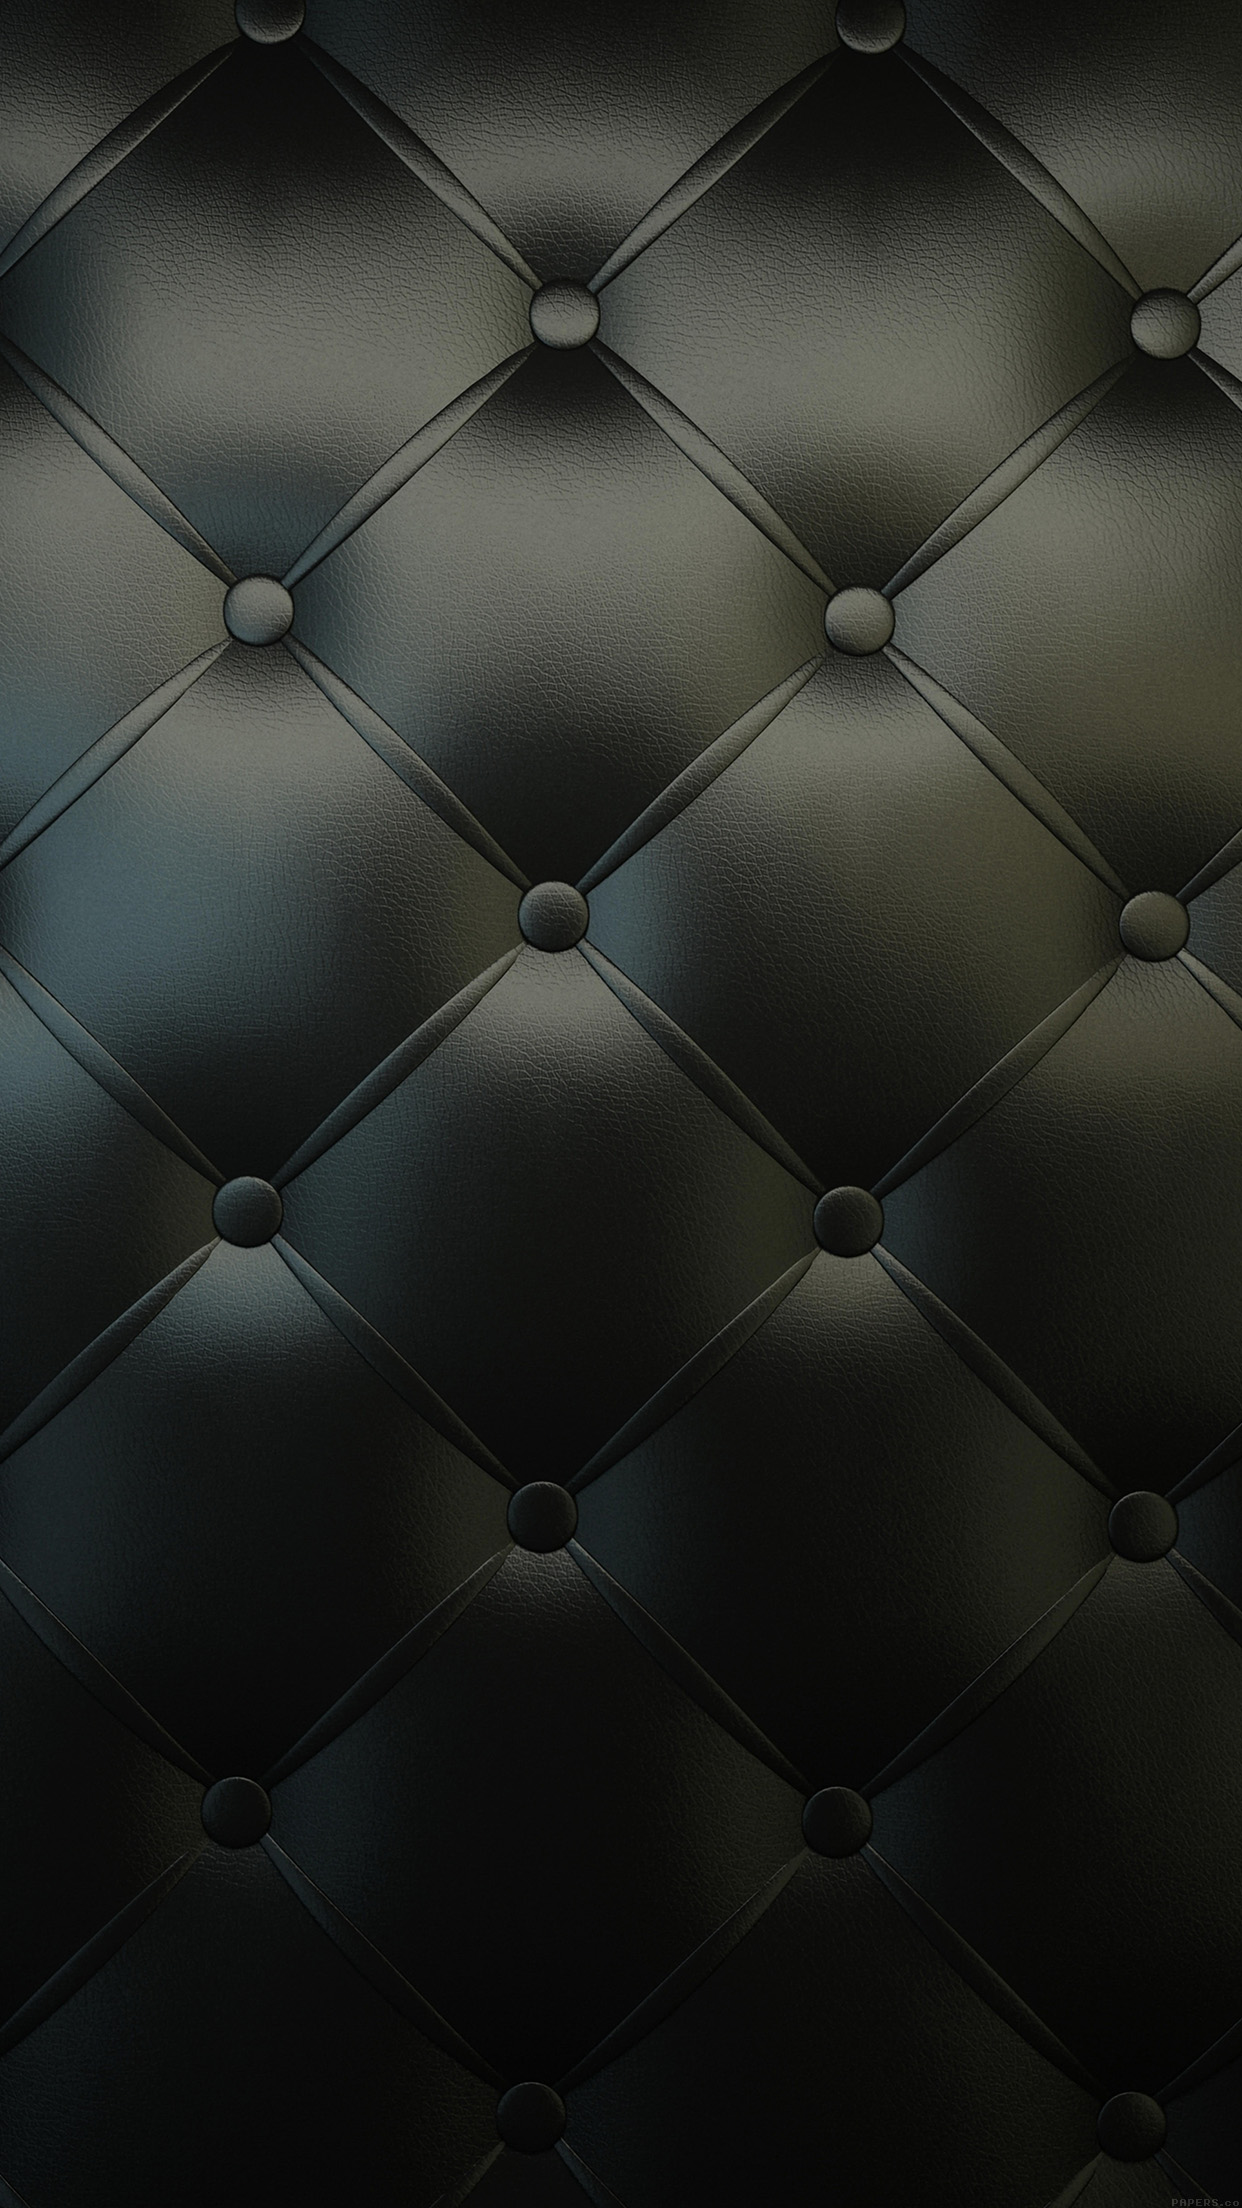 Iphone6papers Vf48 Sofa Dark Texture Pattern